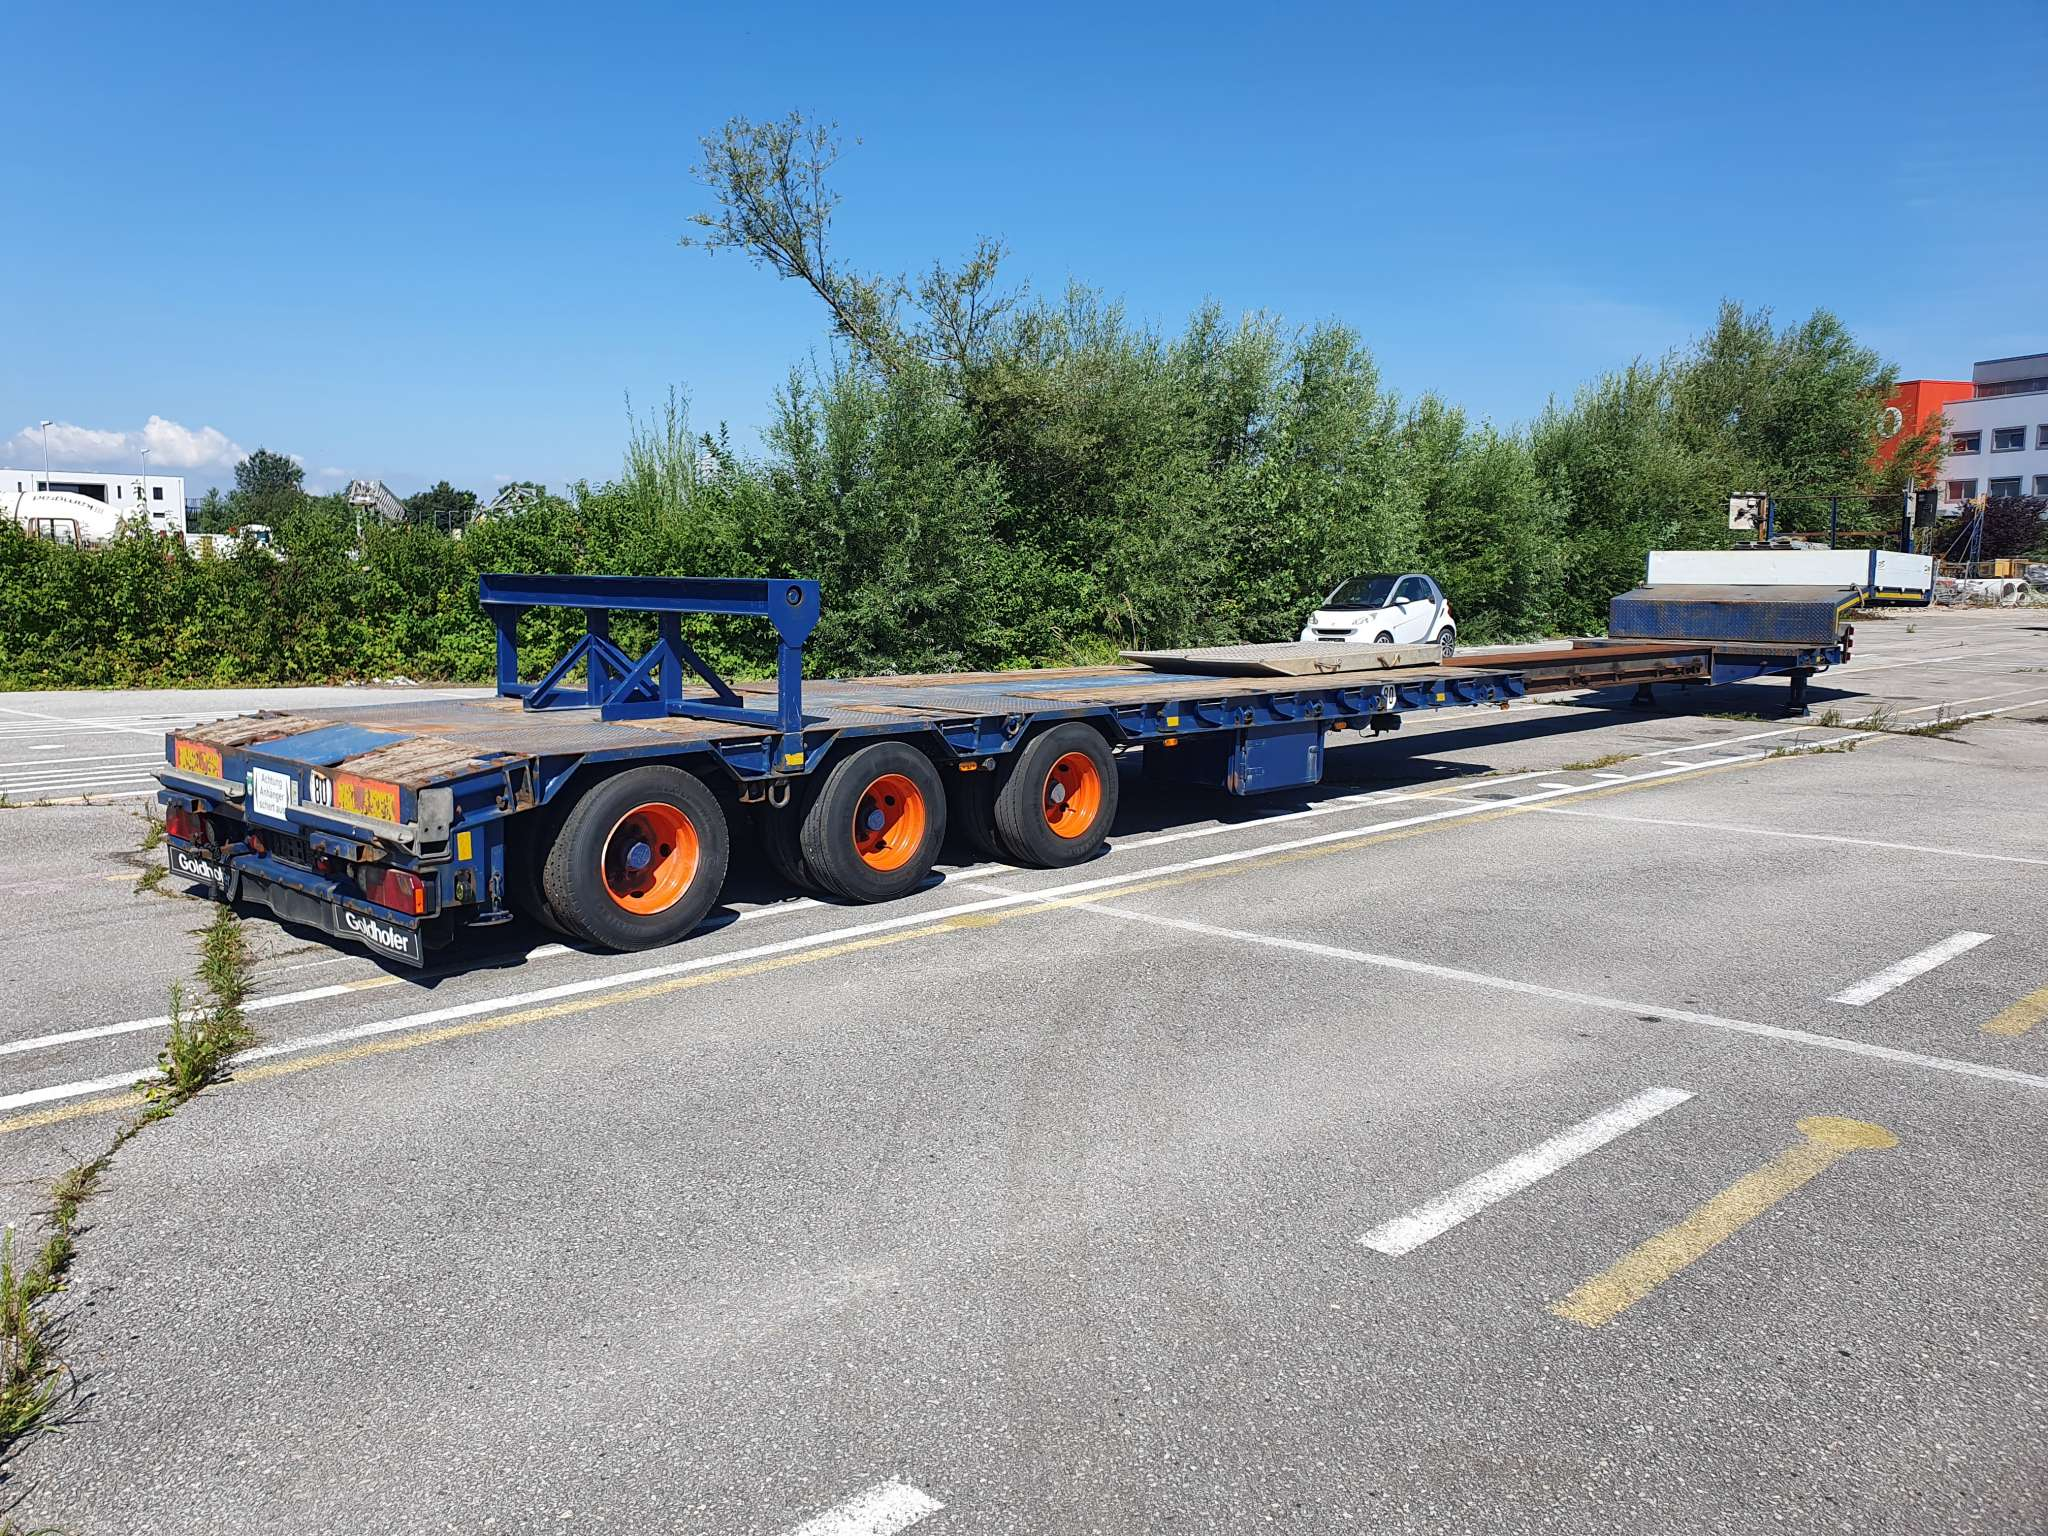 Lowbed| 3 axle hydraulically steered | extendable till 16,6 m | payload 36,4 tons